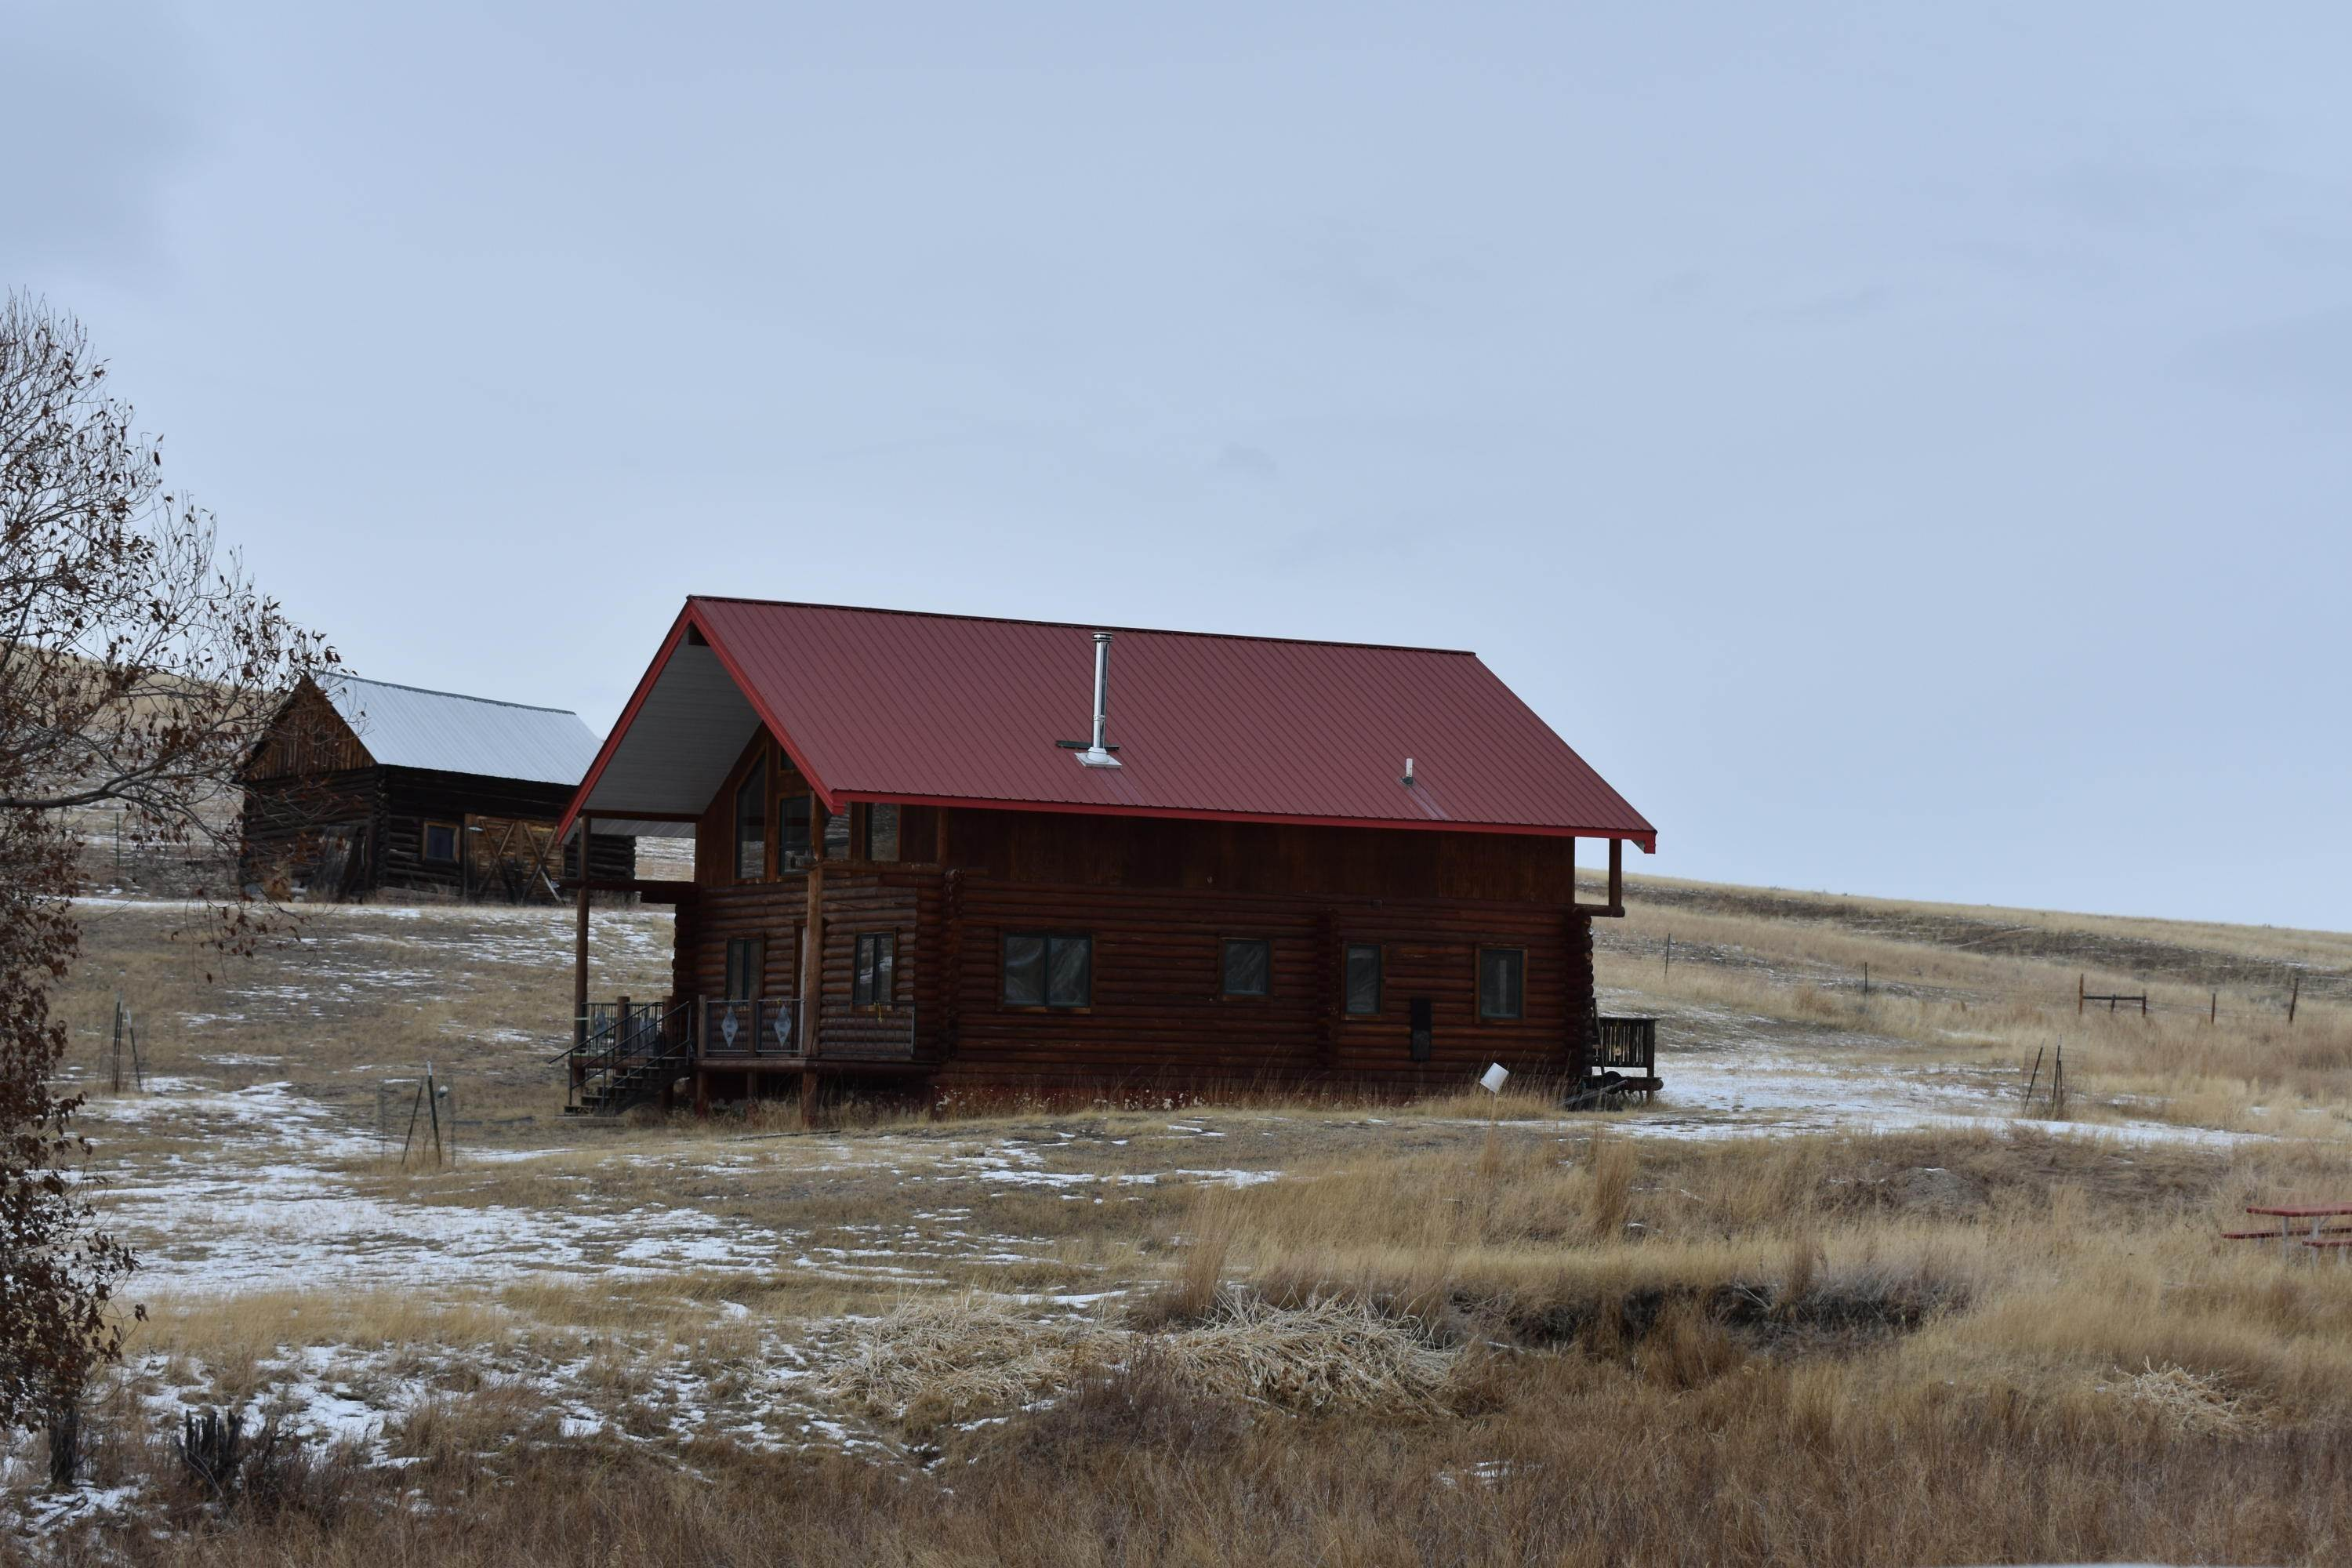 Farm / Agriculture for Sale at Tbd Tbd Ramsay, Montana 59748 United States